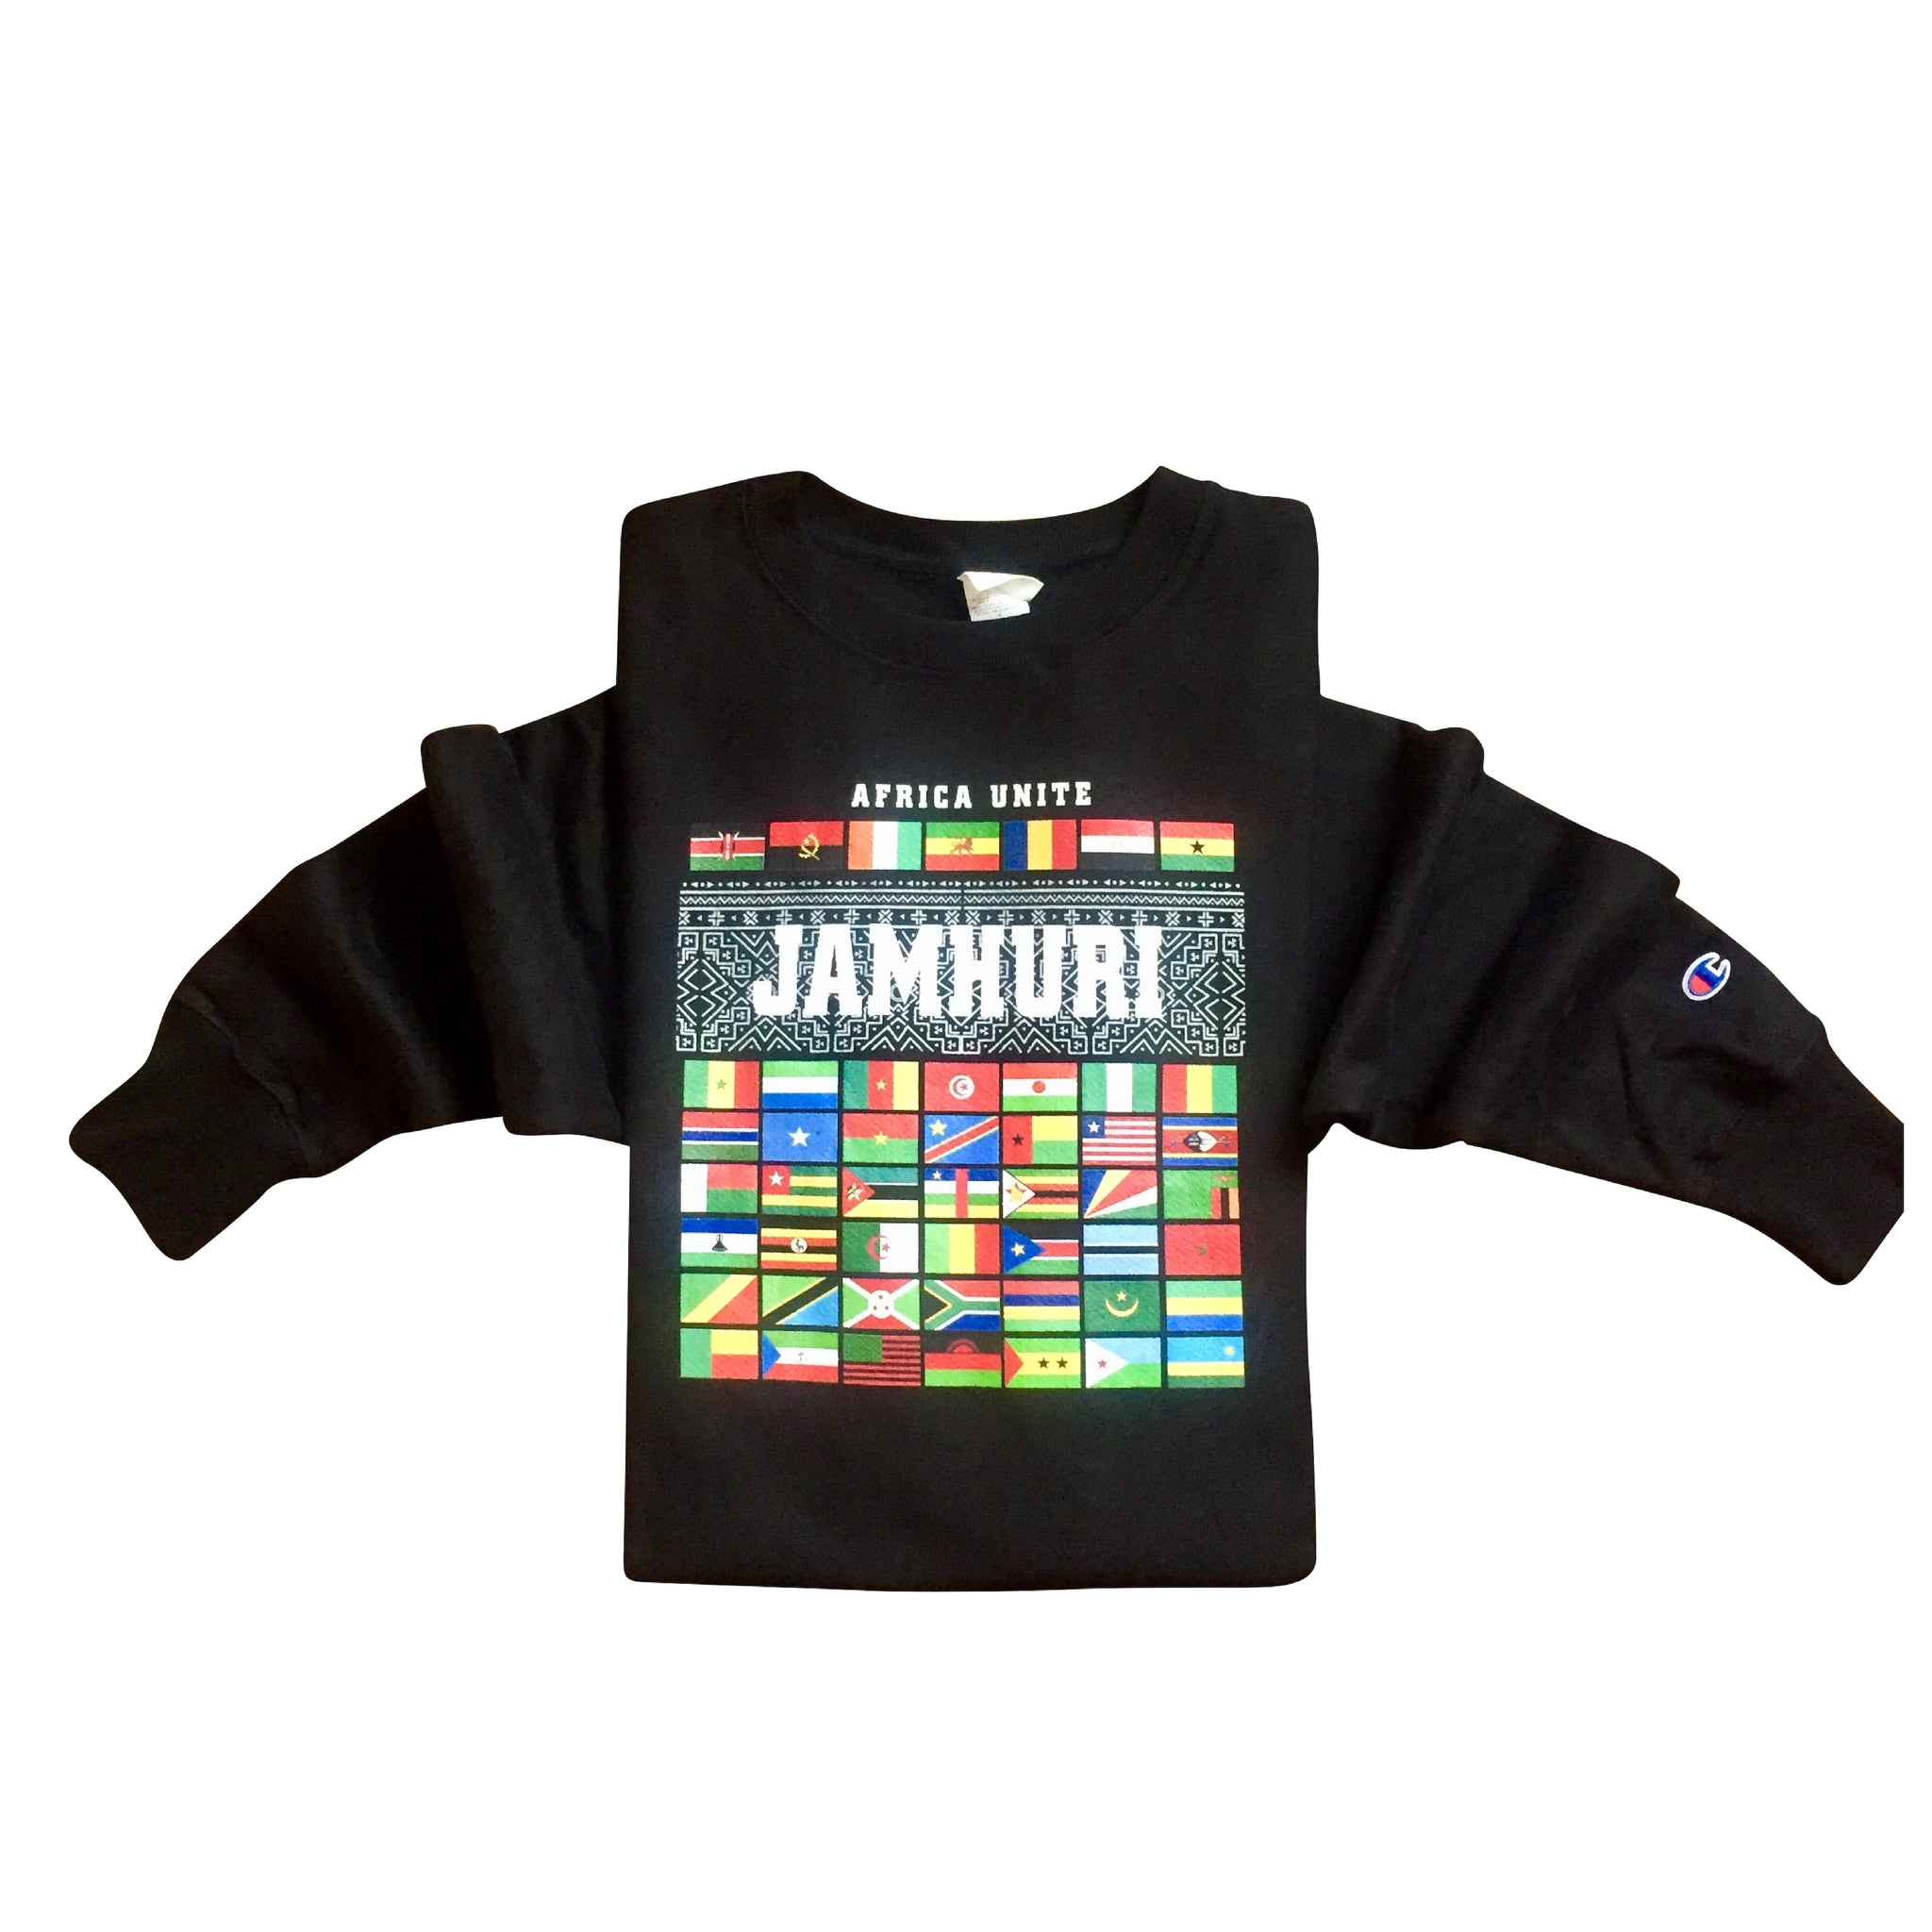 Africa Unite flags Limited Edition Champion Brand Black Crewneck sweater